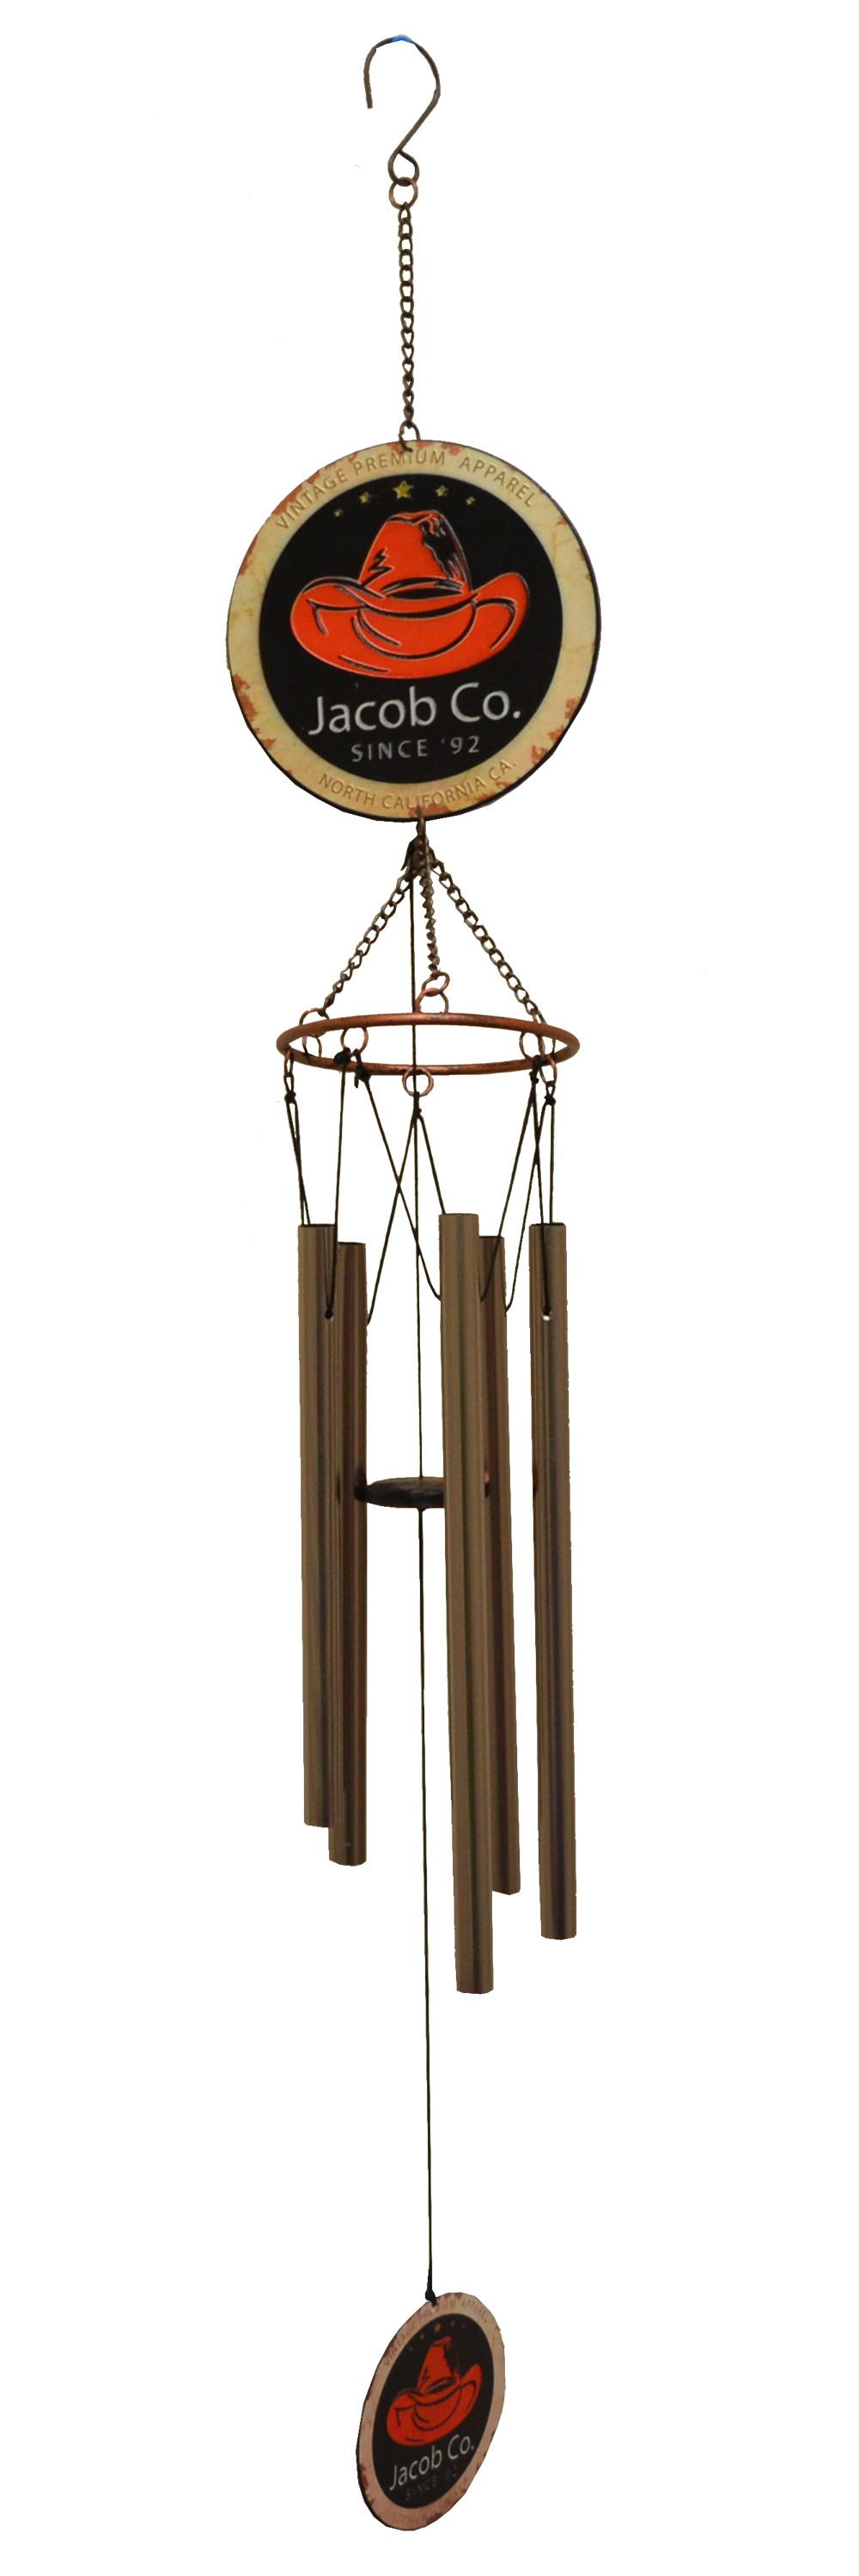 HAT PRINTED IRON TOP WIND CHIME